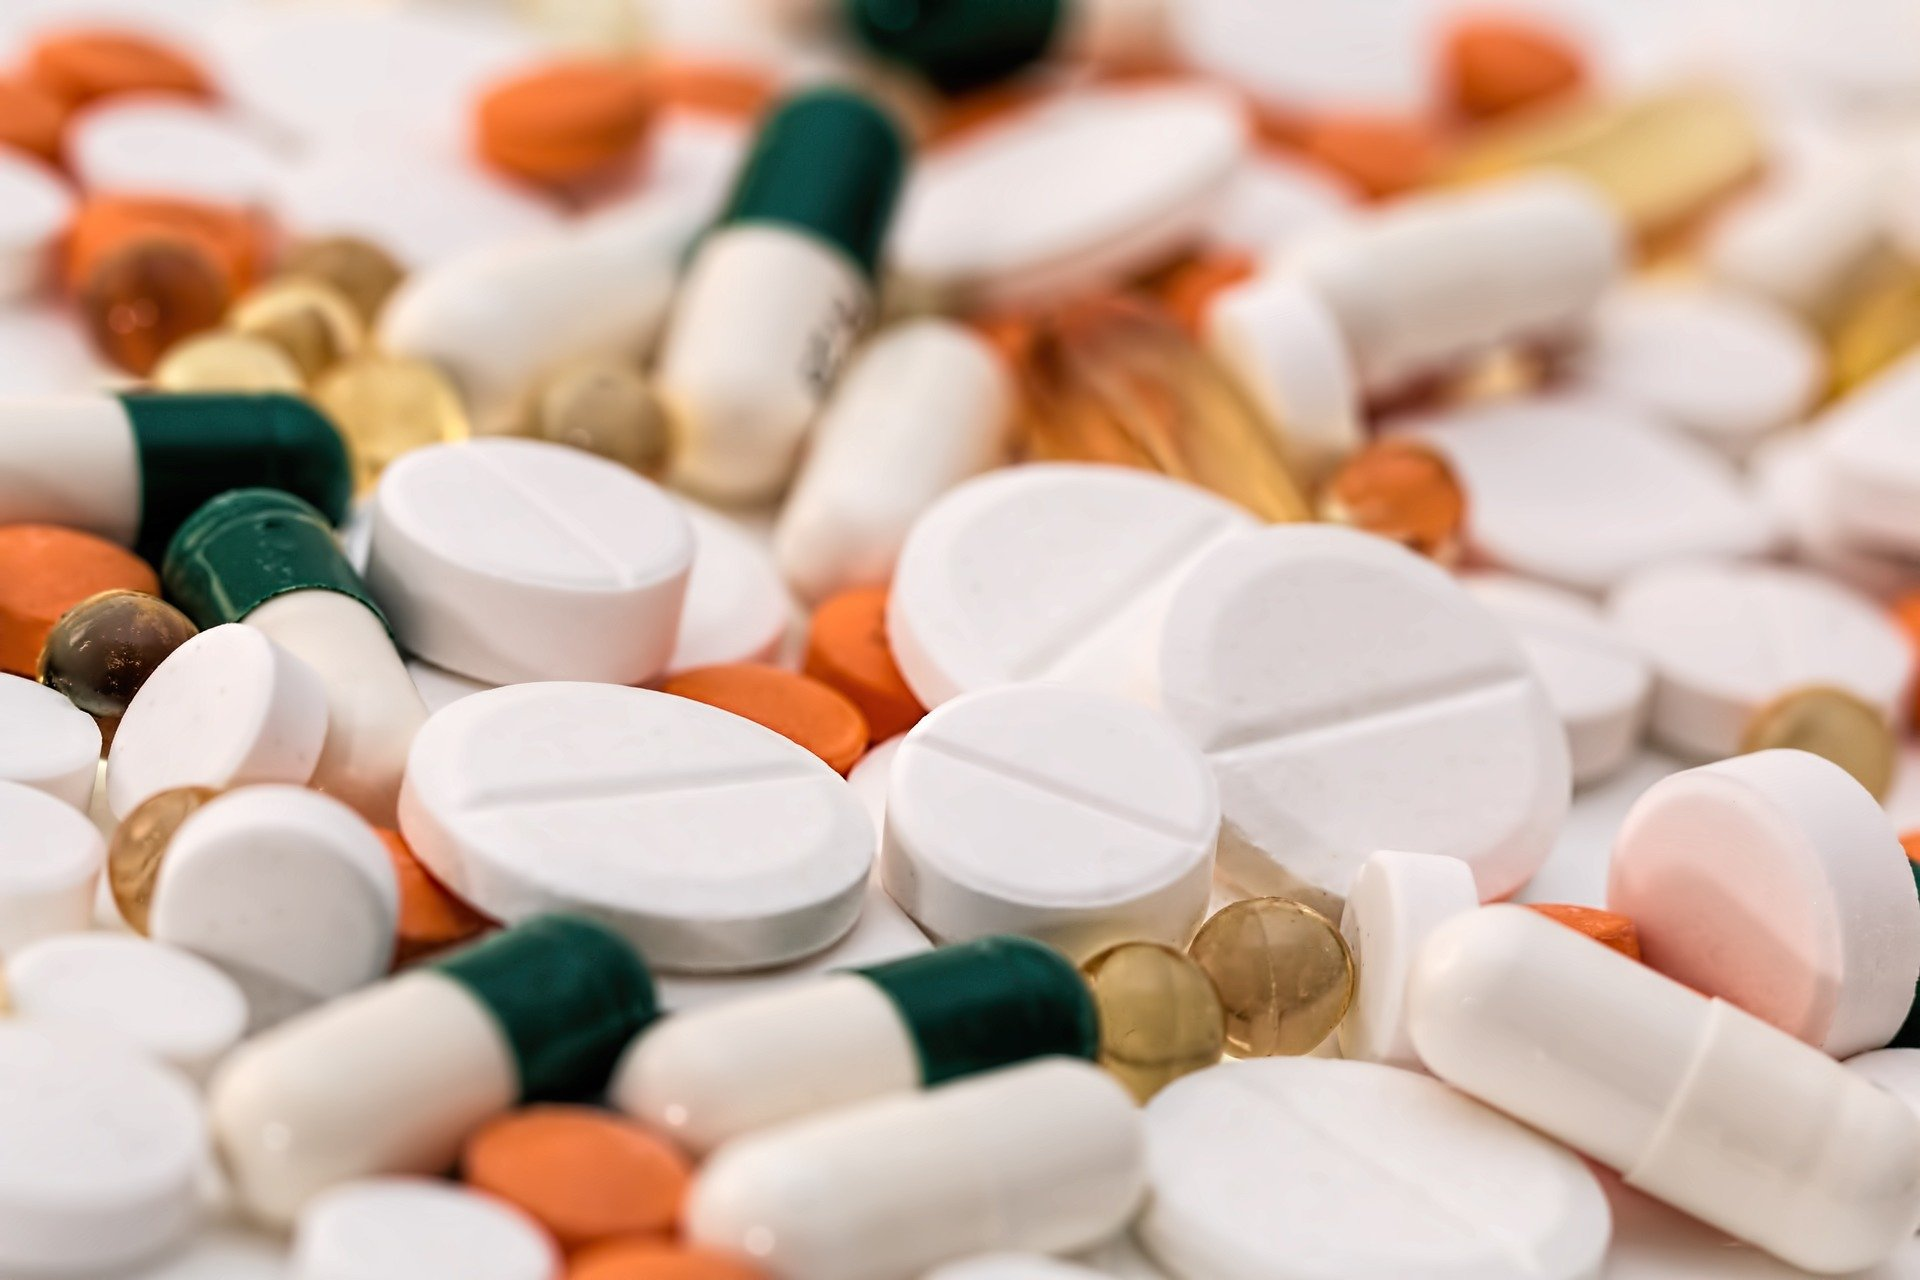 Risk Management and Its Implications for Drugs and Alcohol at Work